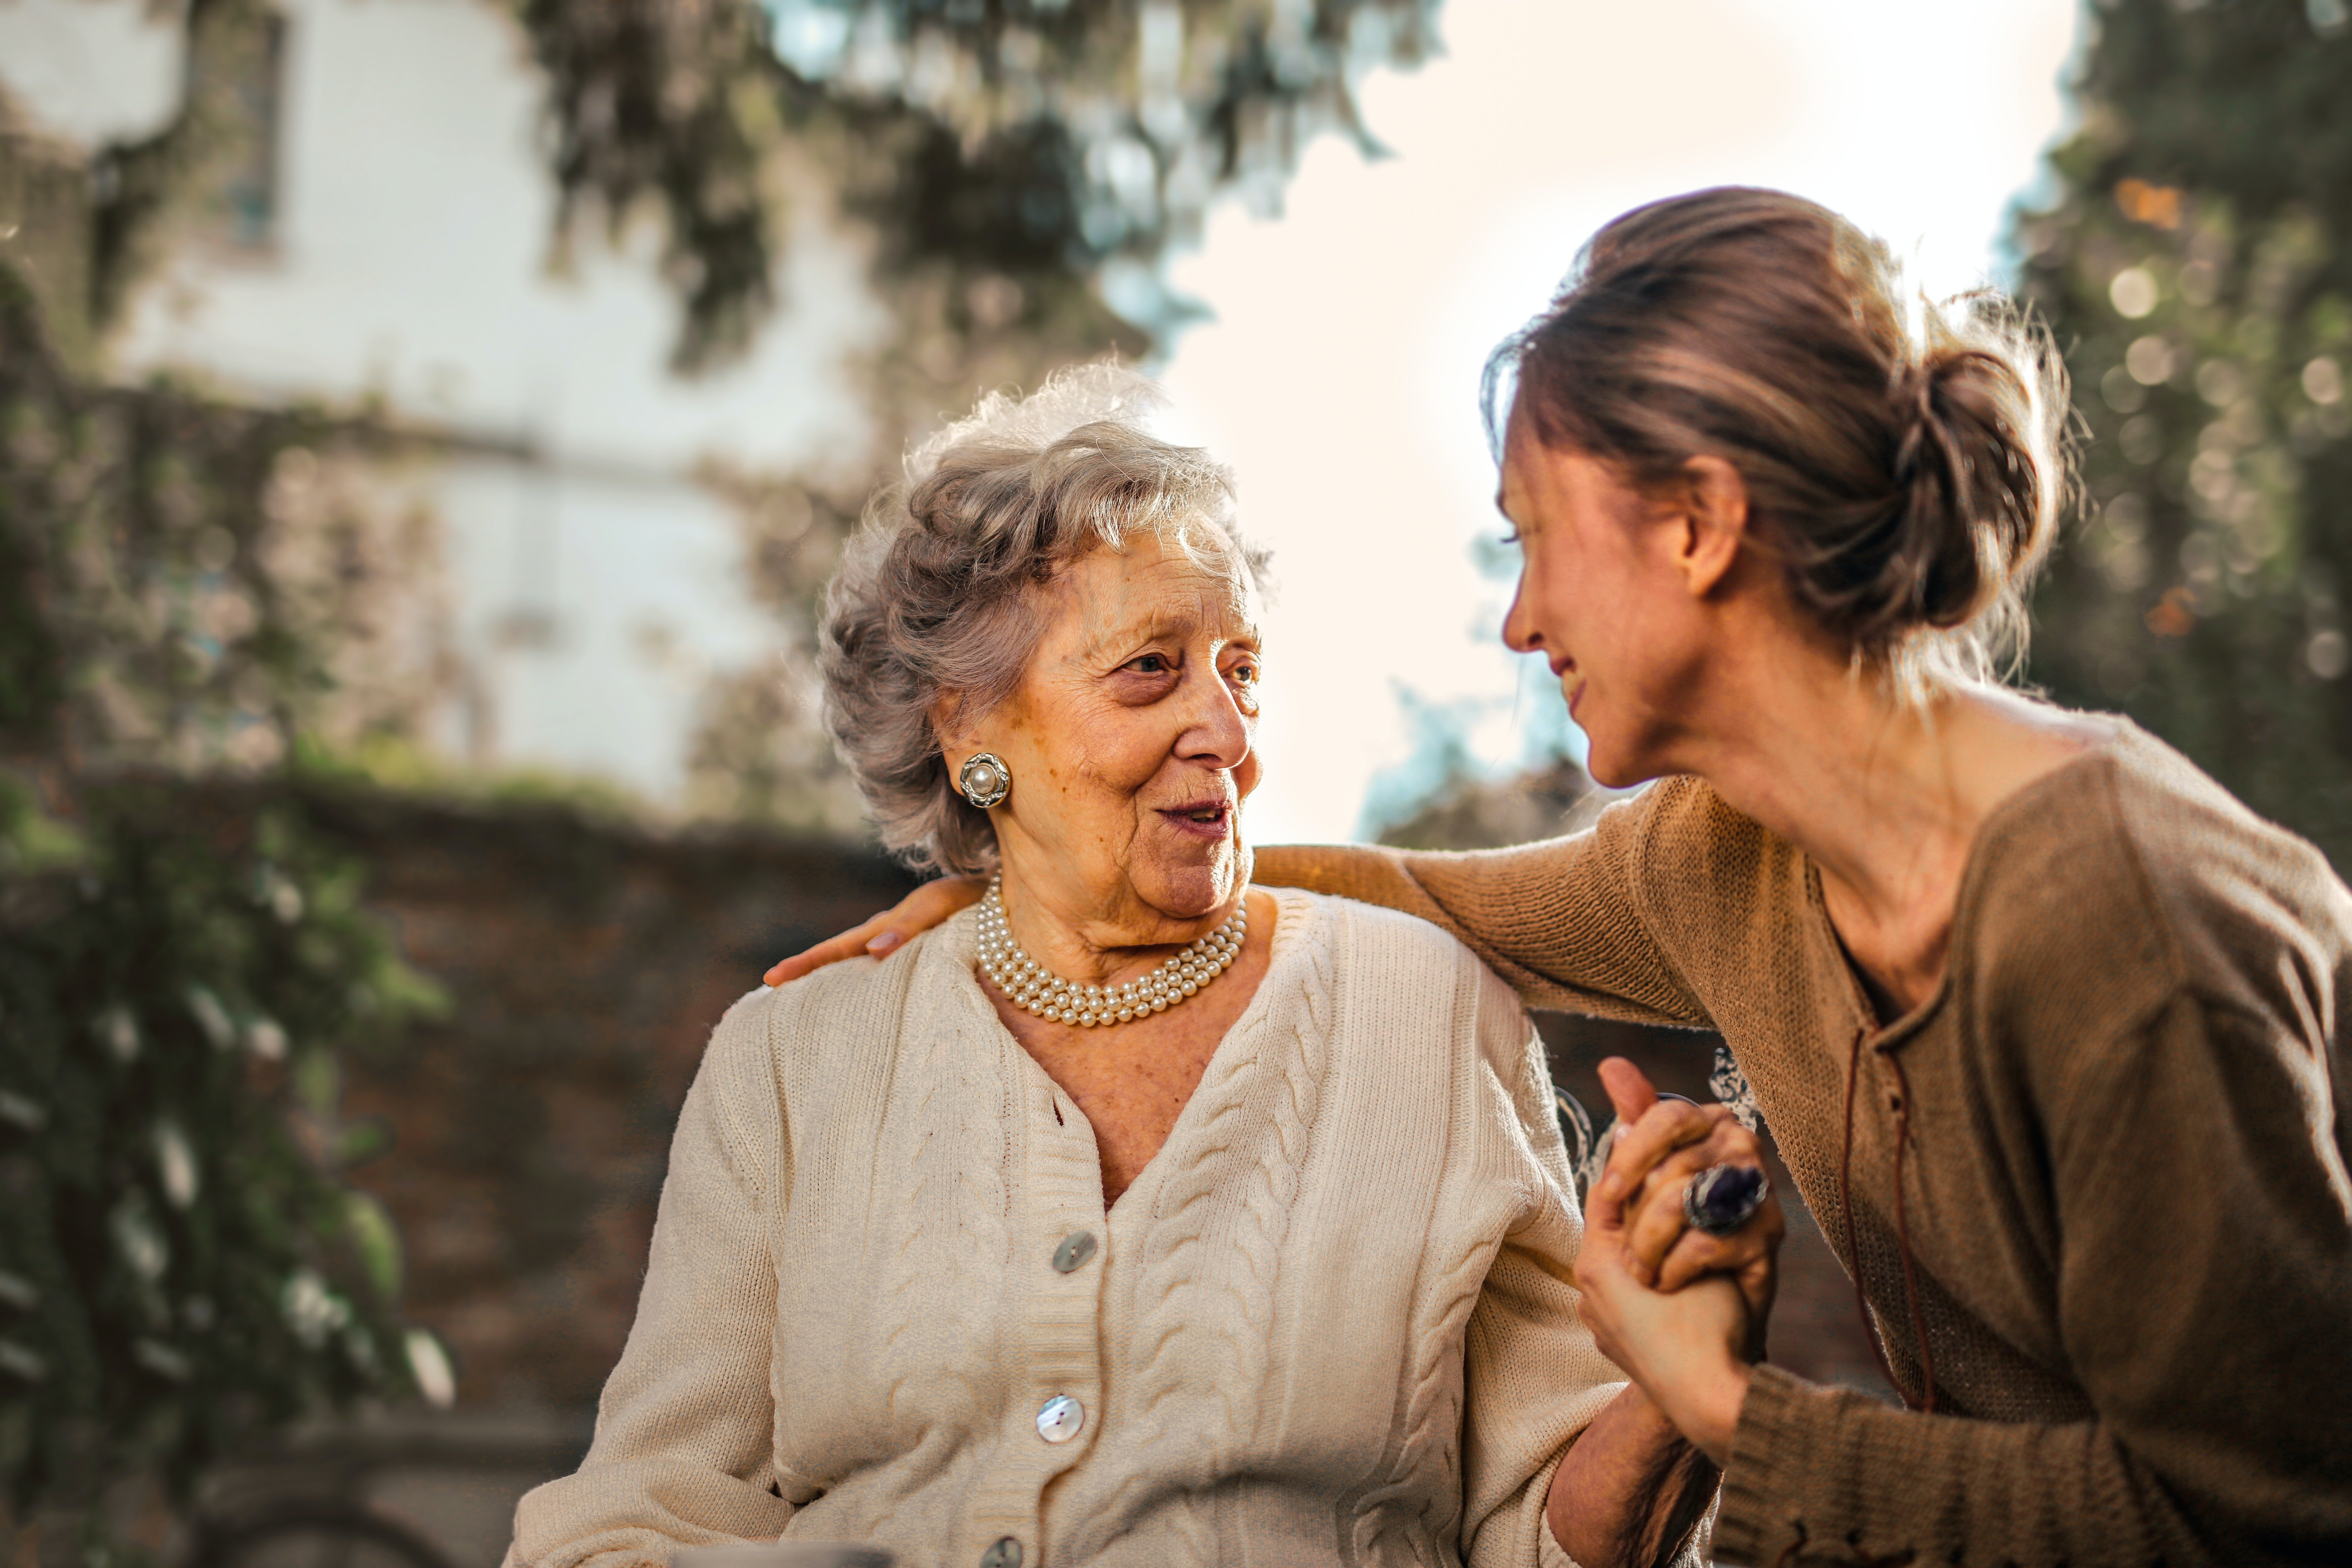 I went to visit my granny in her home | Source: Pexels